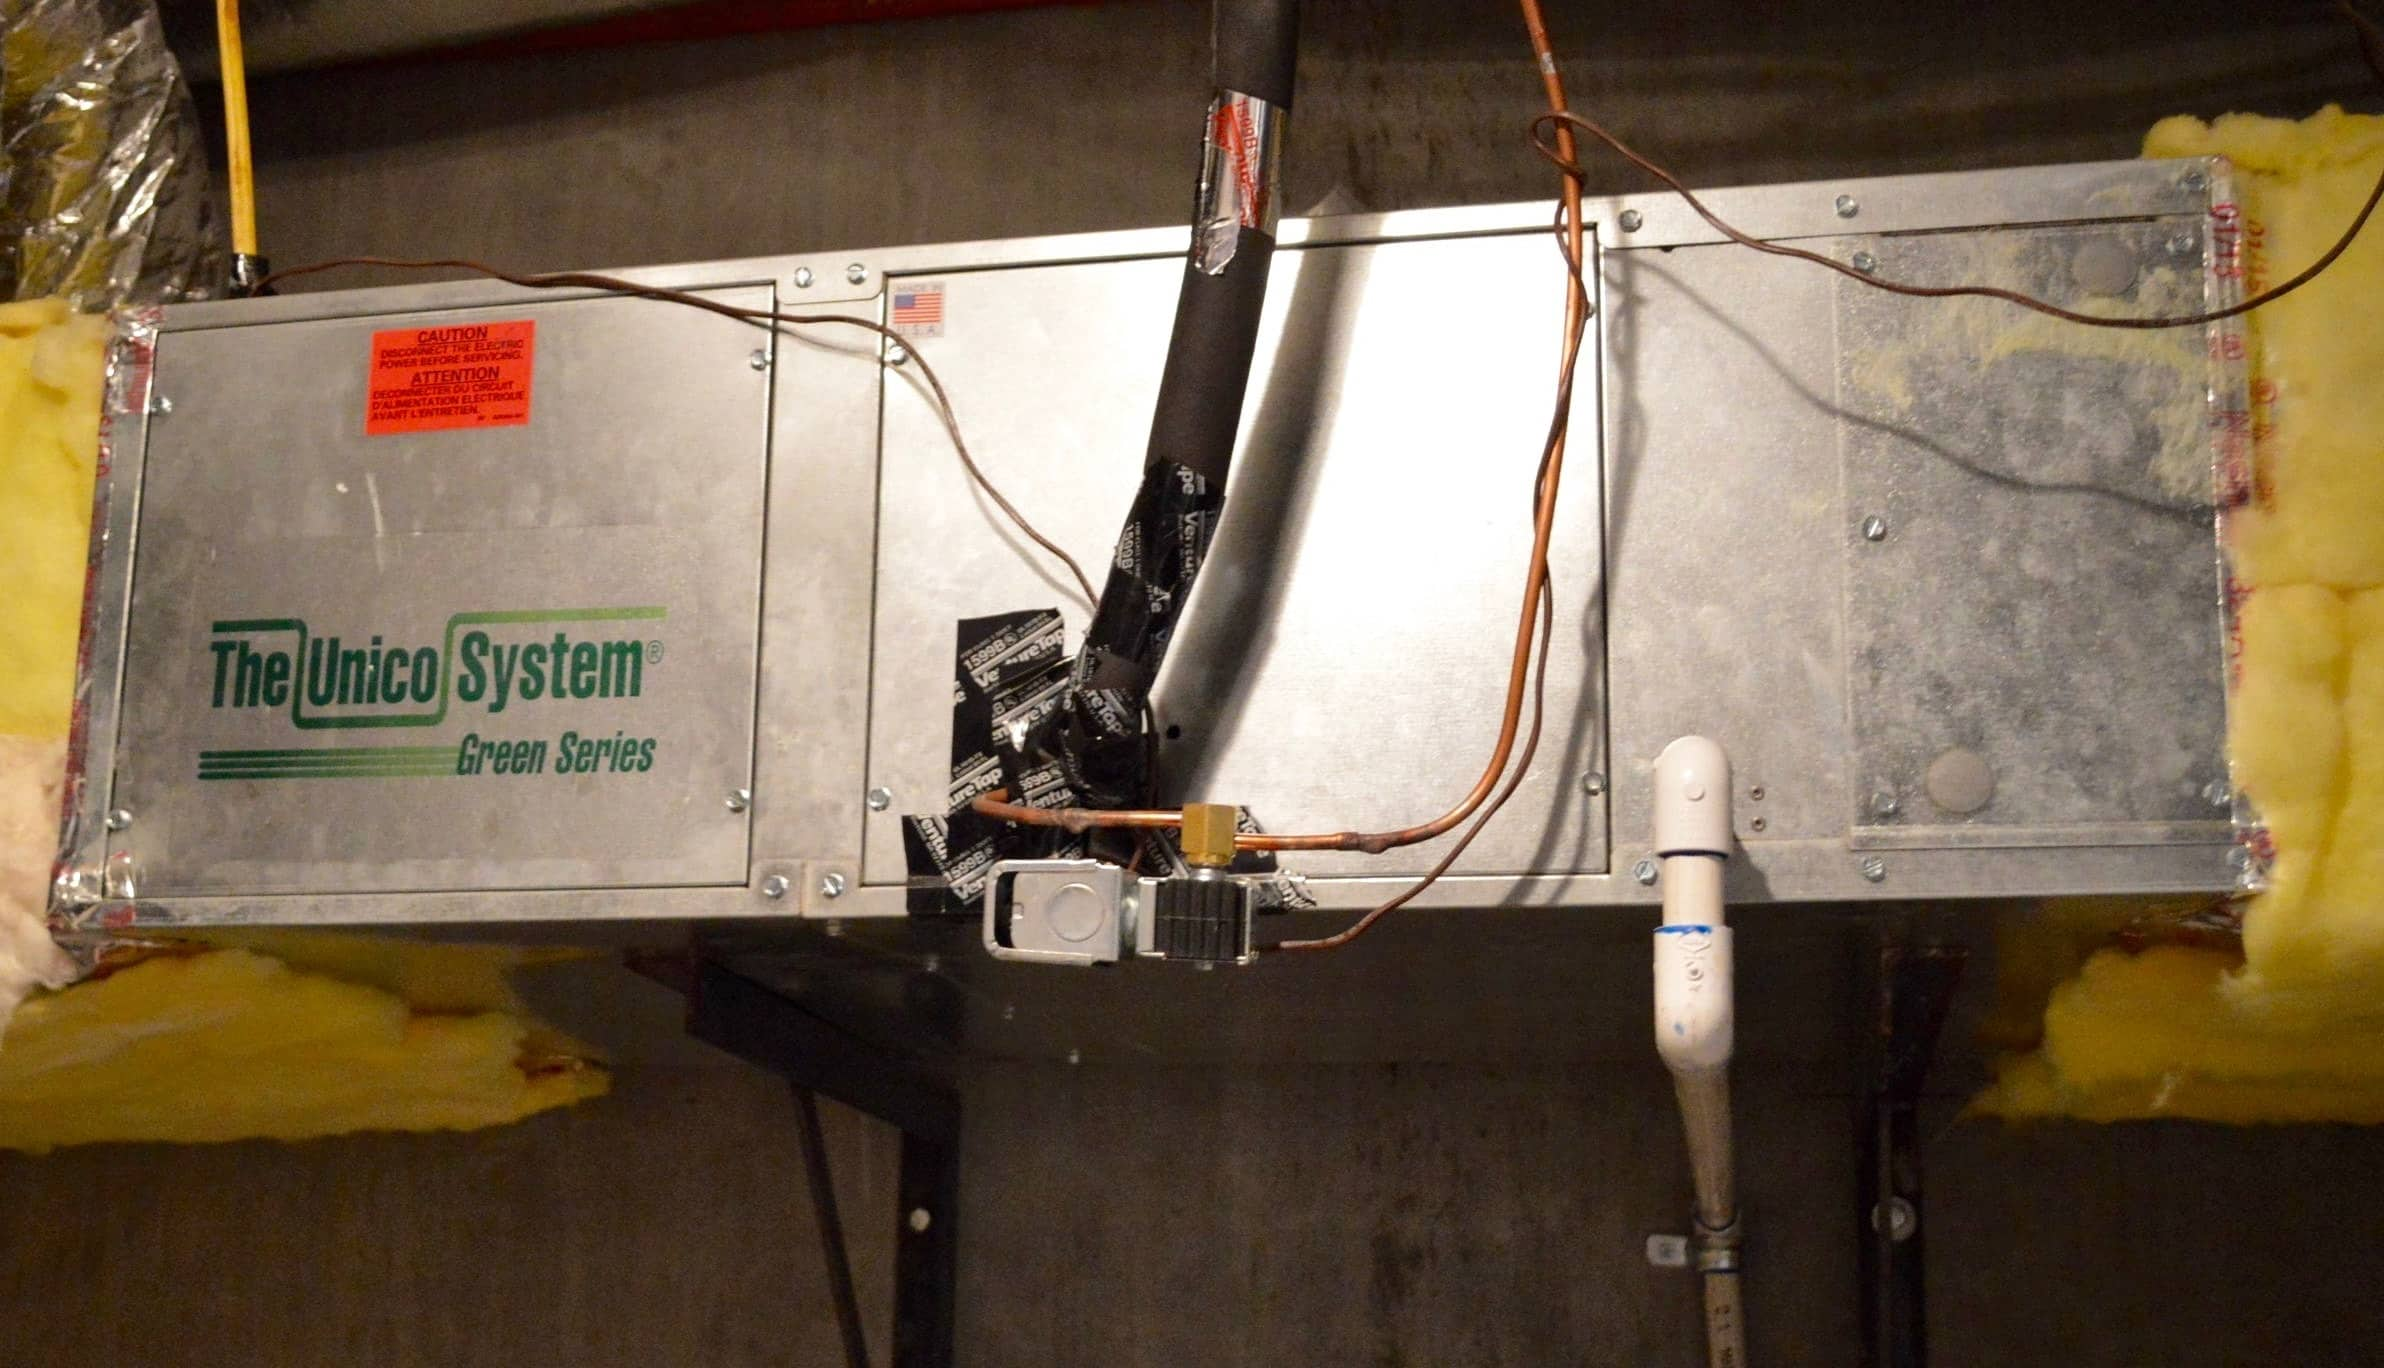 Read more about where this HVAC unit was installed!